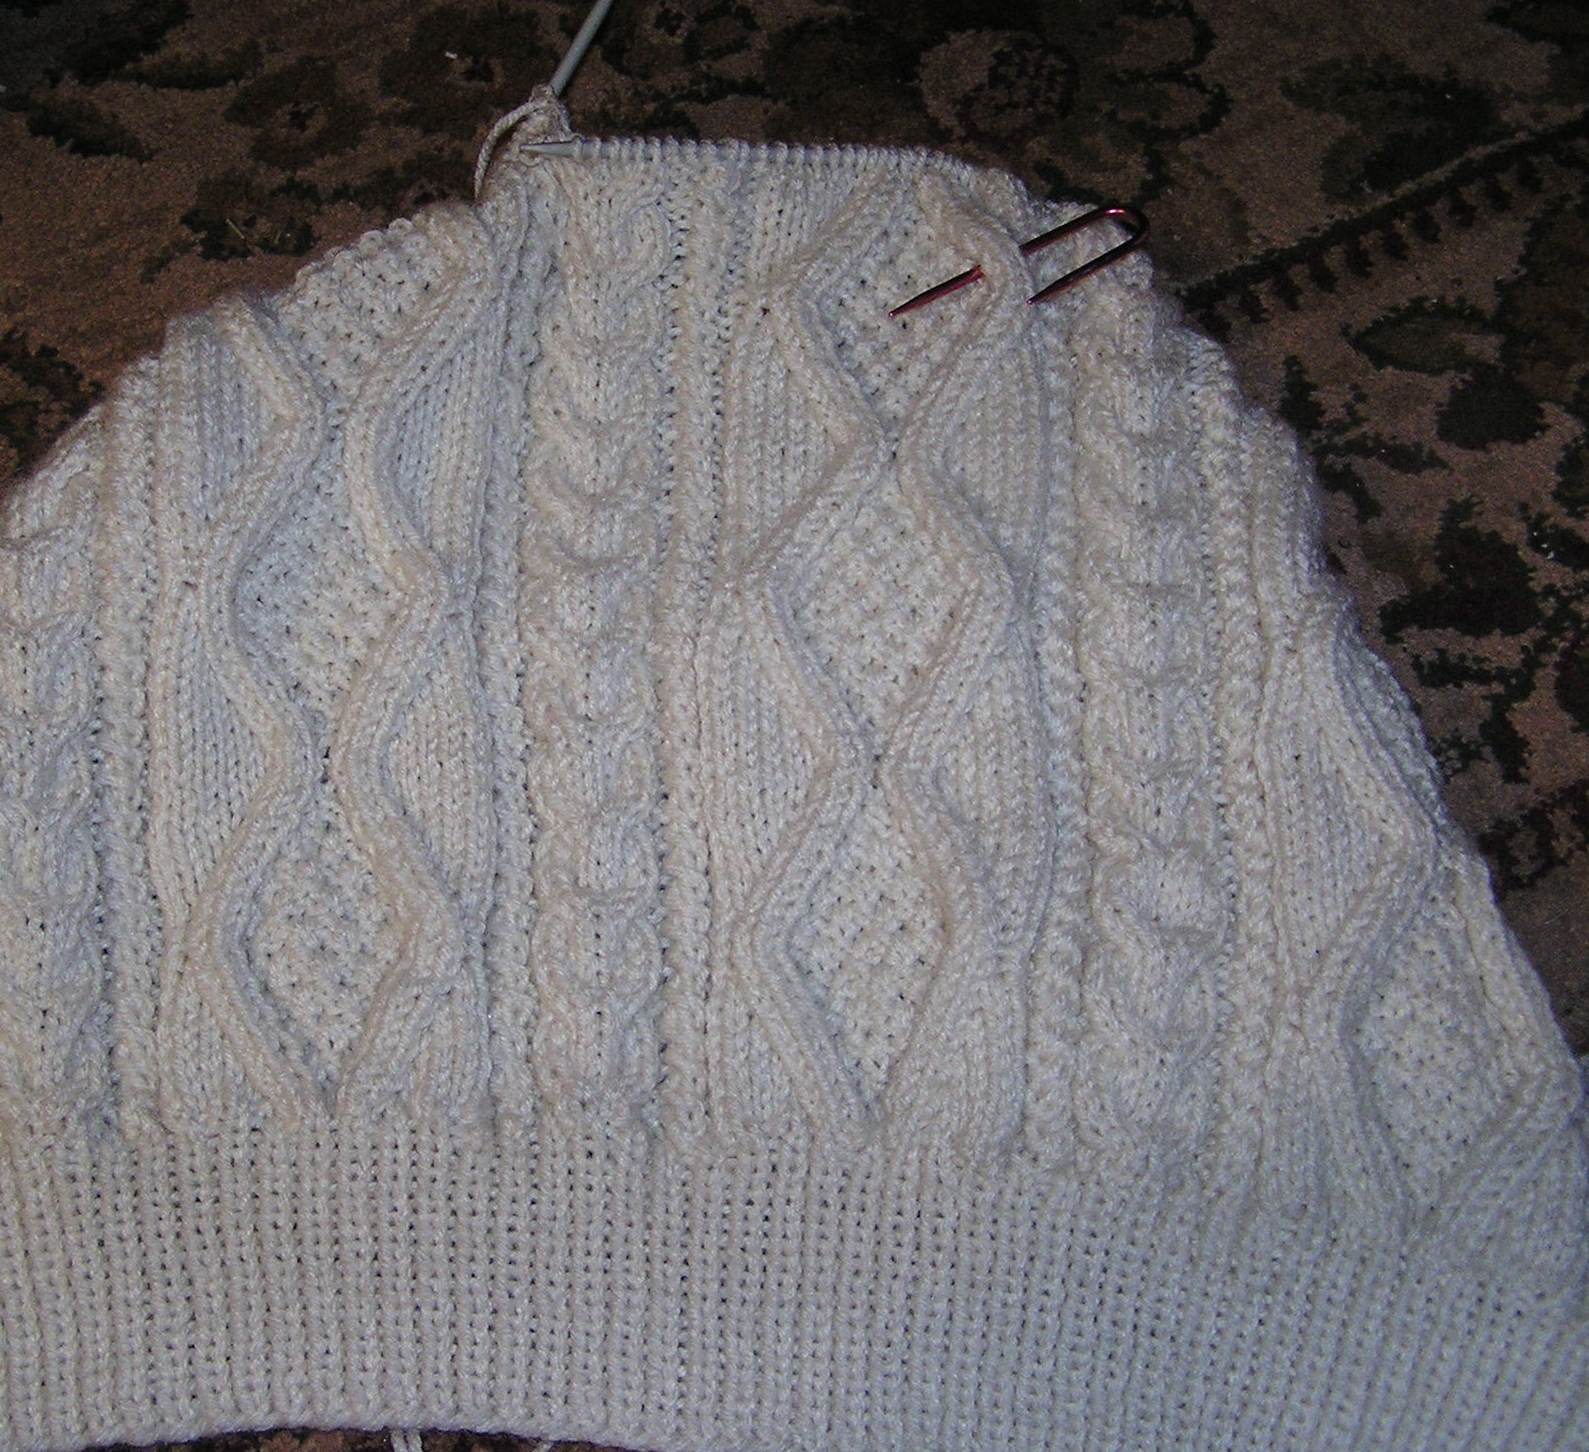 The Cabin Countess : Making an Irish Cable Knit Sweater